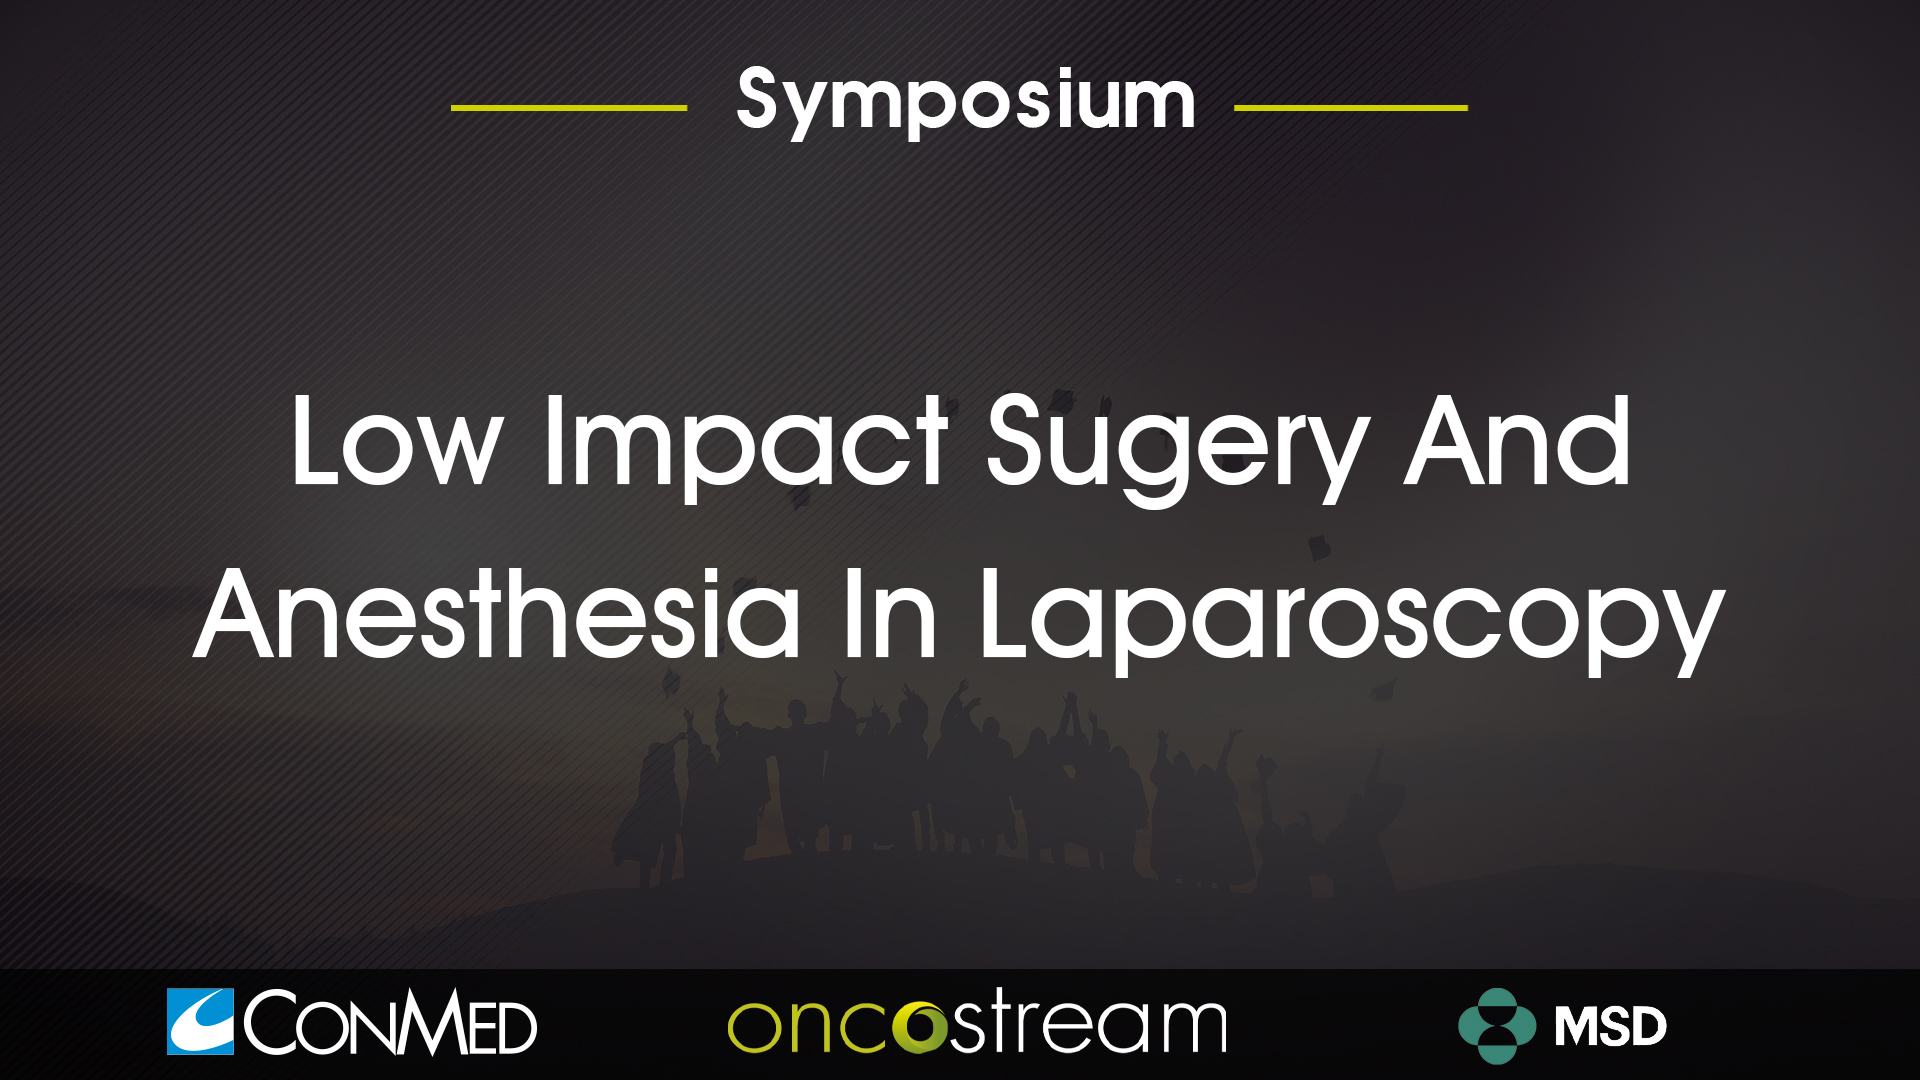 LOW IMPACT SURGERY AND ANESTHESIA IN LAPAROSCOPY